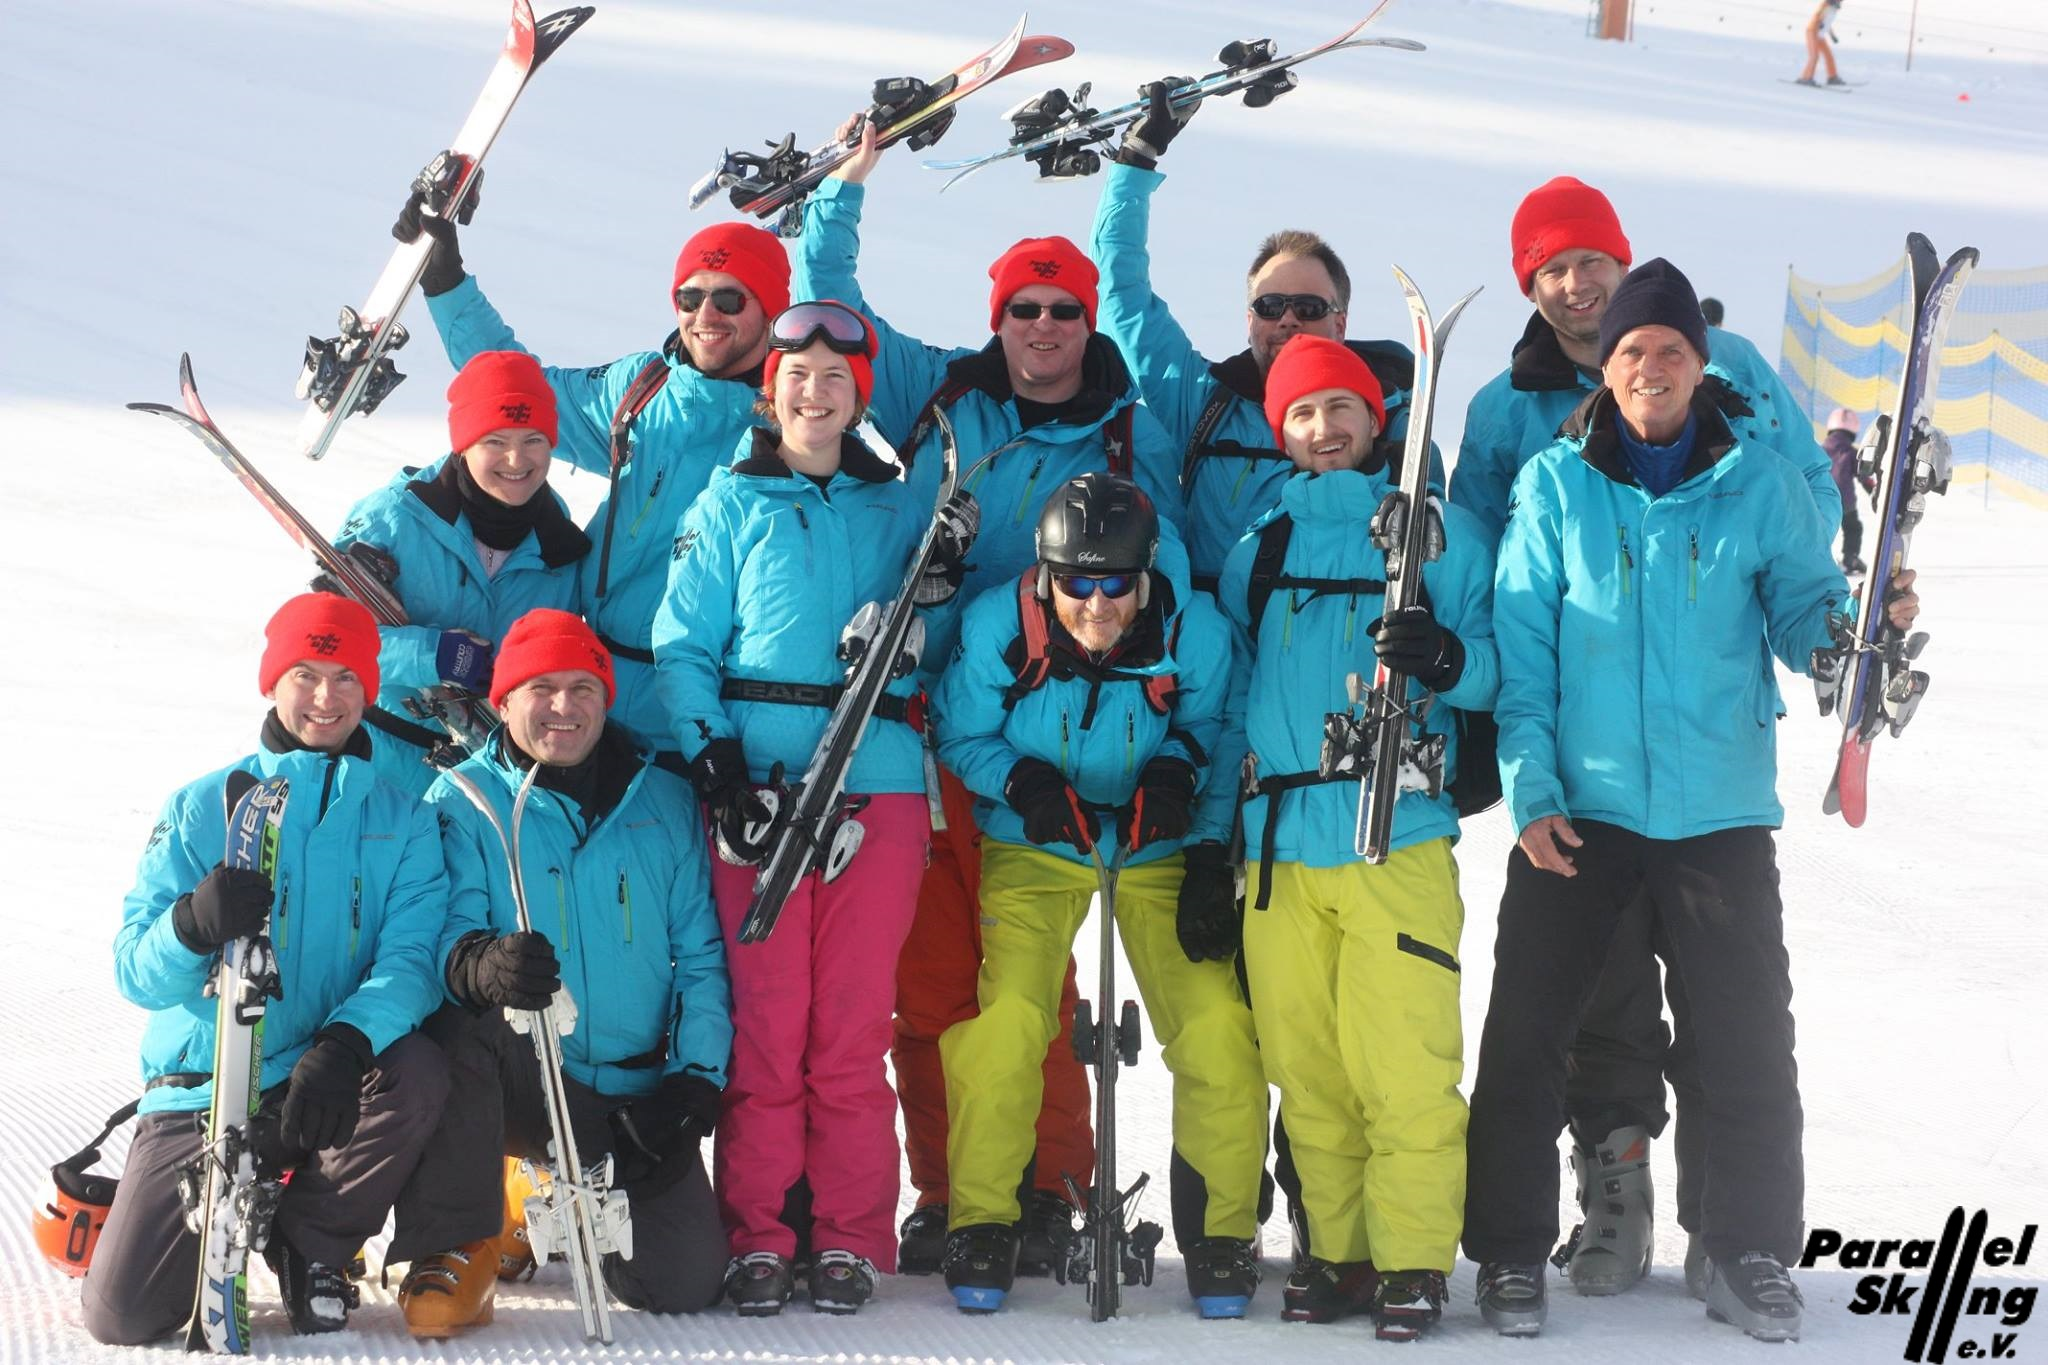 Instructors with Short Skis